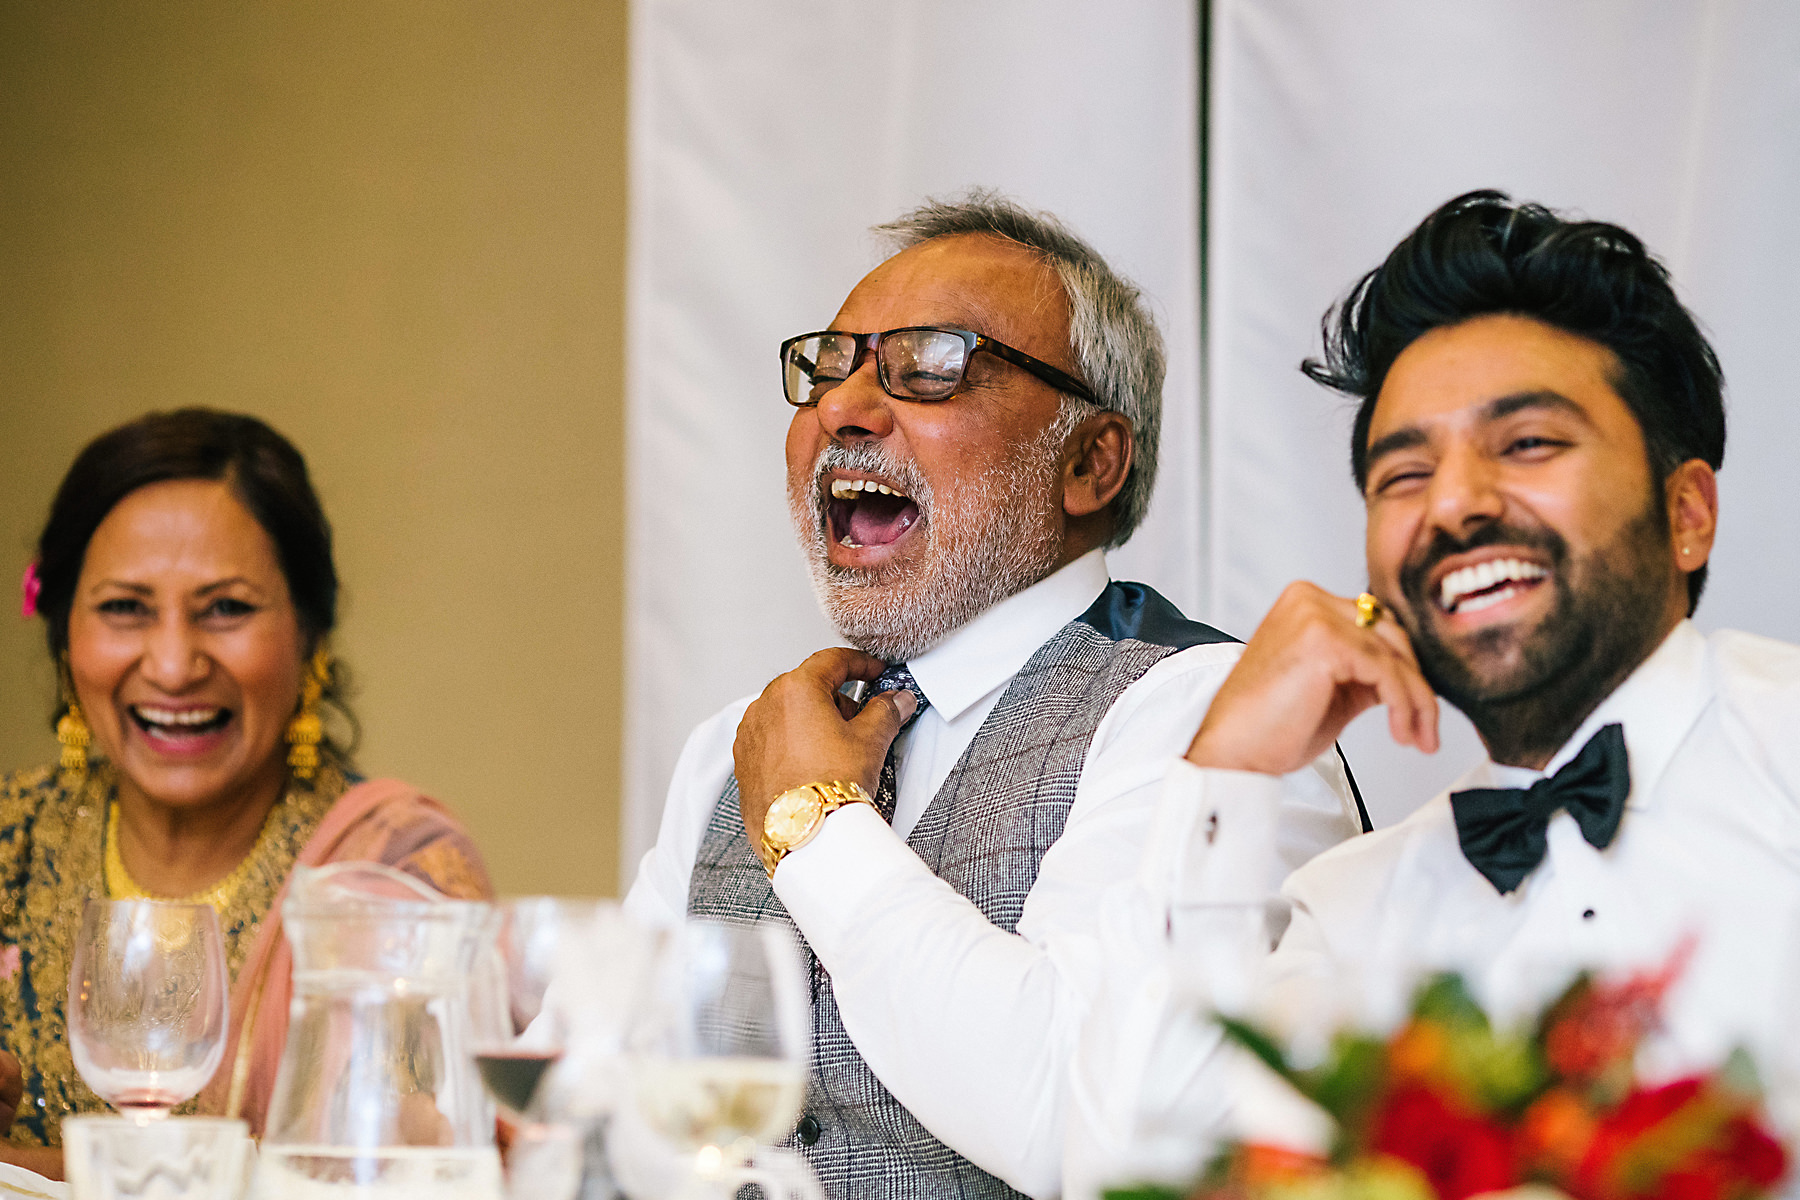 grooms dad laughing